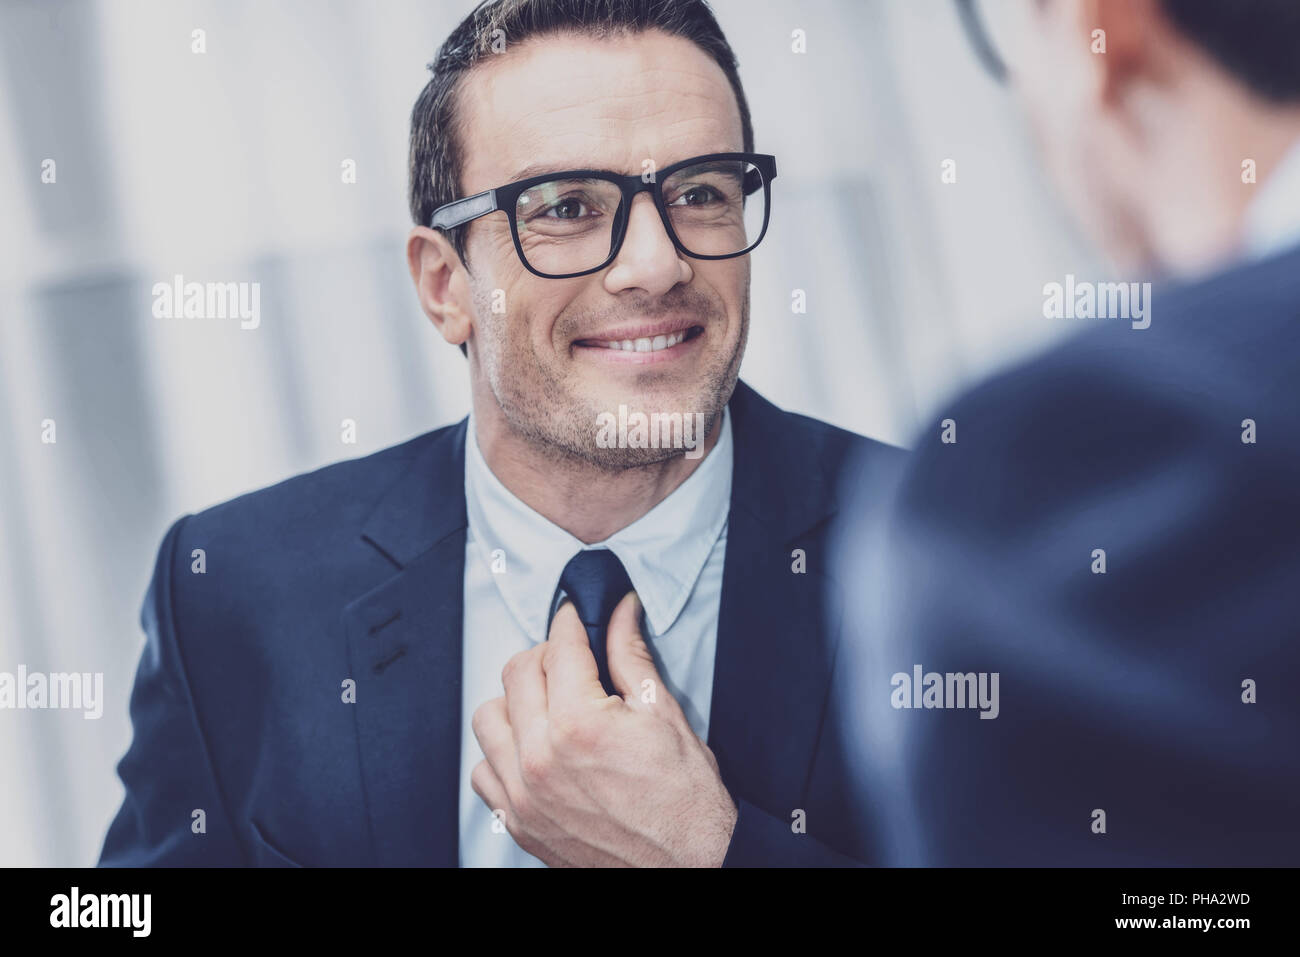 Handsome man looking at mirror - Stock Image